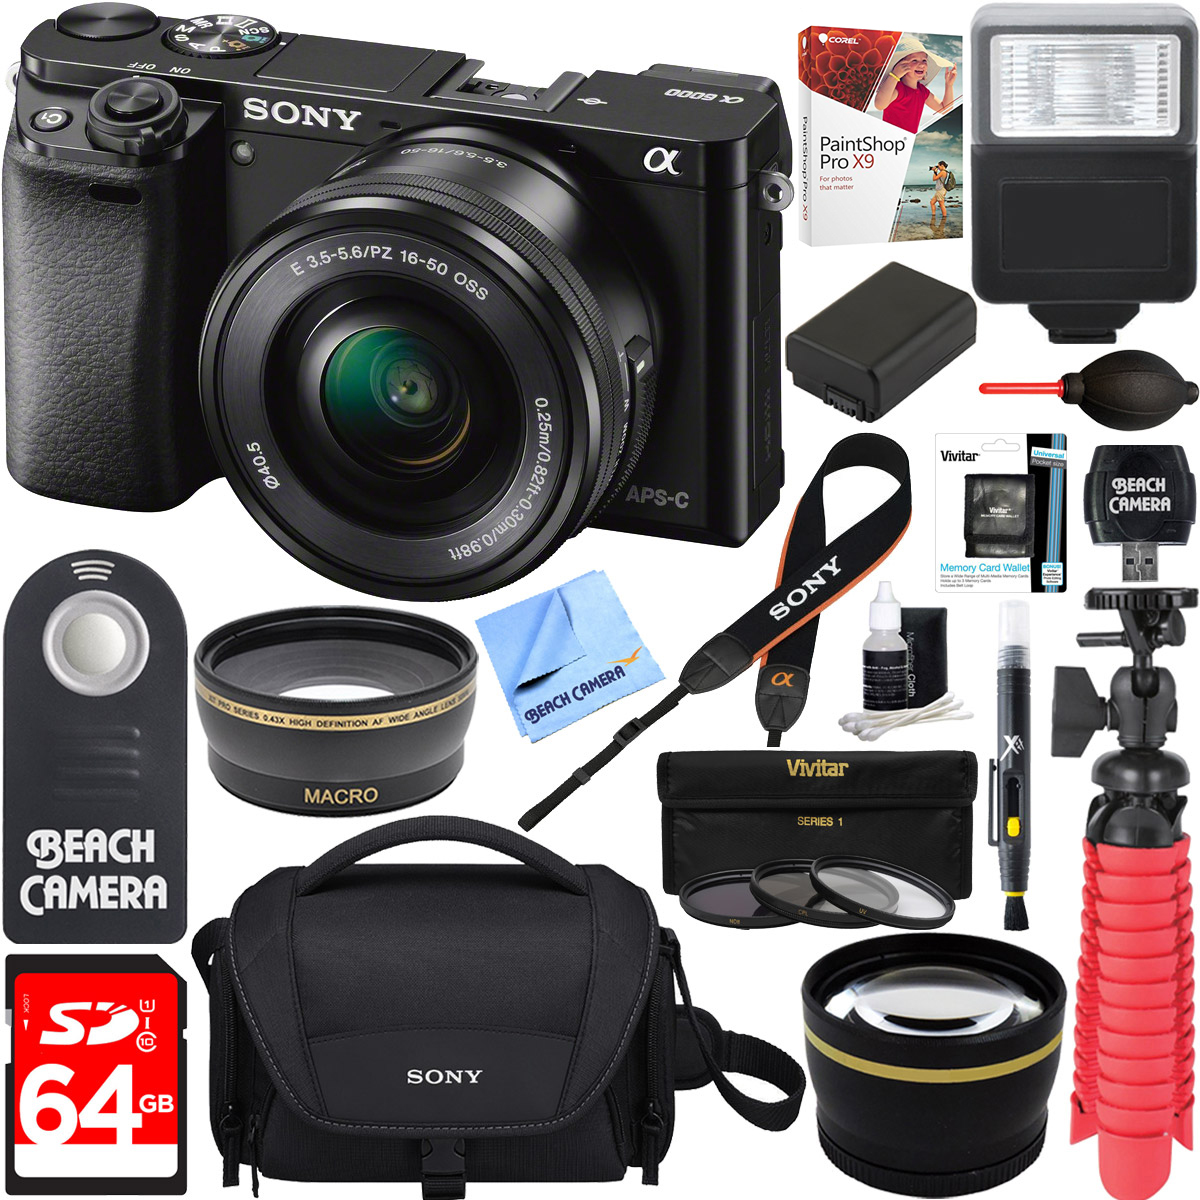 Sony Alpha a6000 ***FREE 2 DAY SHIPPING*** Mirrorless Digital Sony Alpha a6000 Camera 24.3MP Wi-Fi 16-50mm Lens Kit Black 64GB Bundle DSLR Photo Bag Extra Battery+Wide Angle Lens+2x Telephoto Lens